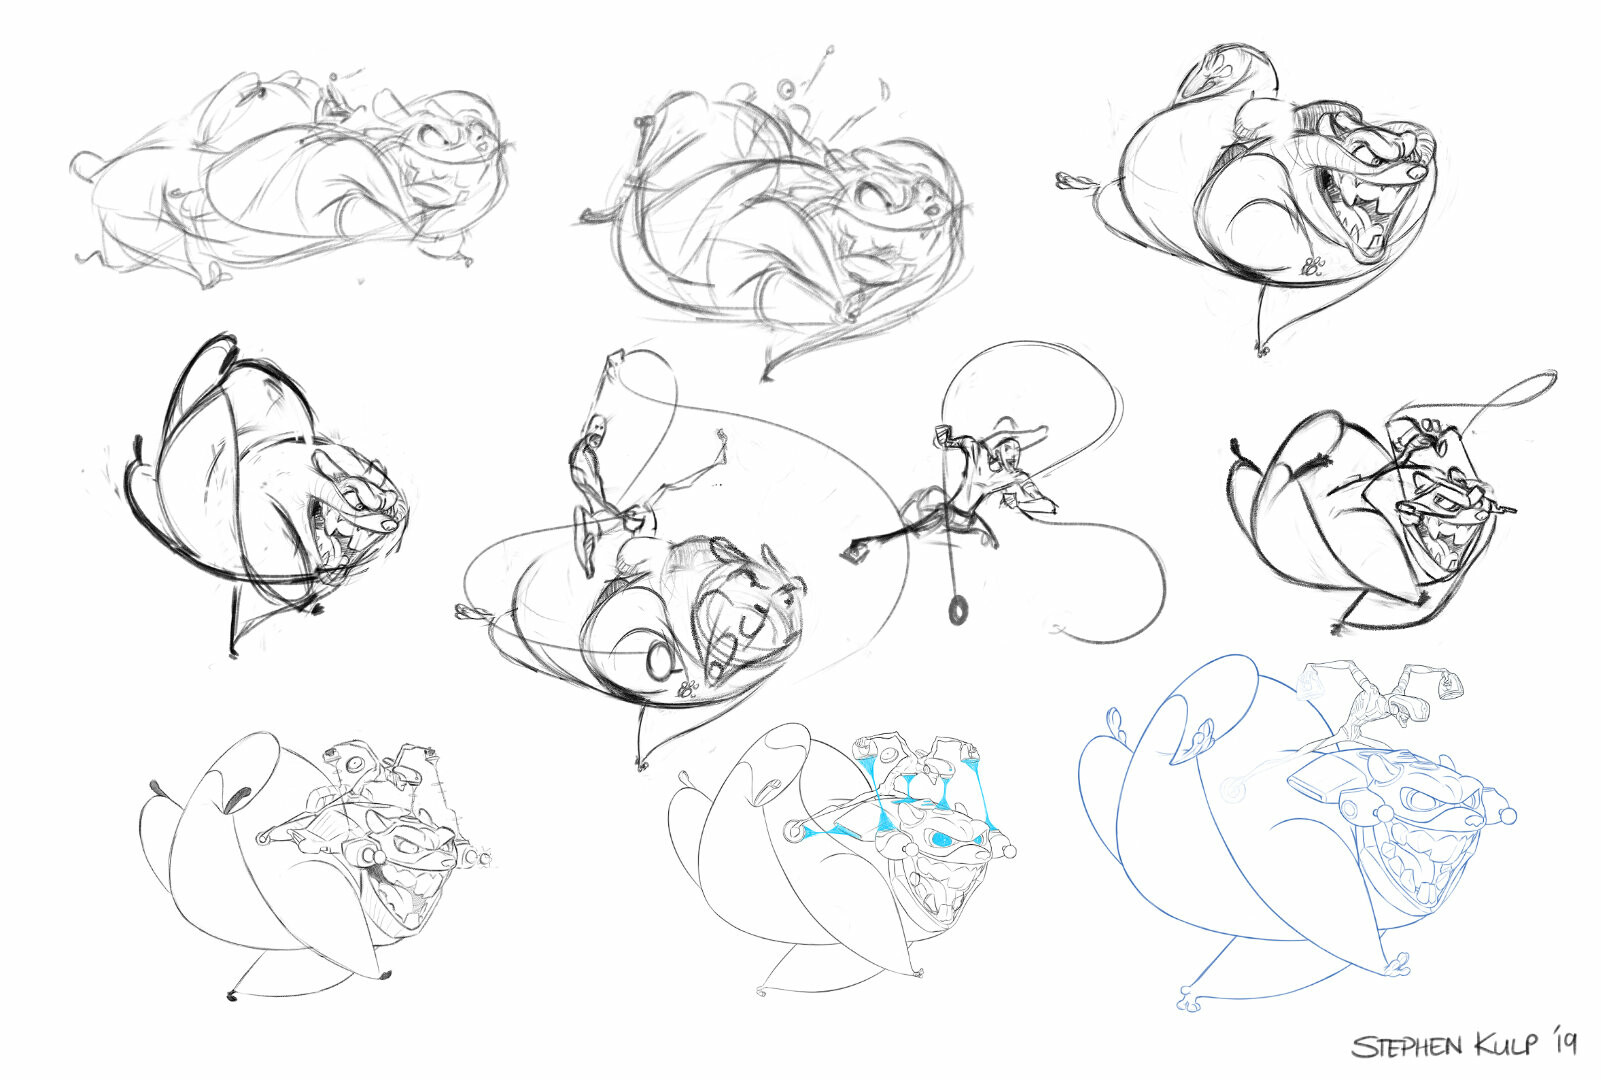 I still love the second sketch in the top row, as it has so much energy. Next time I'll try and keep the energy all the way to the end....